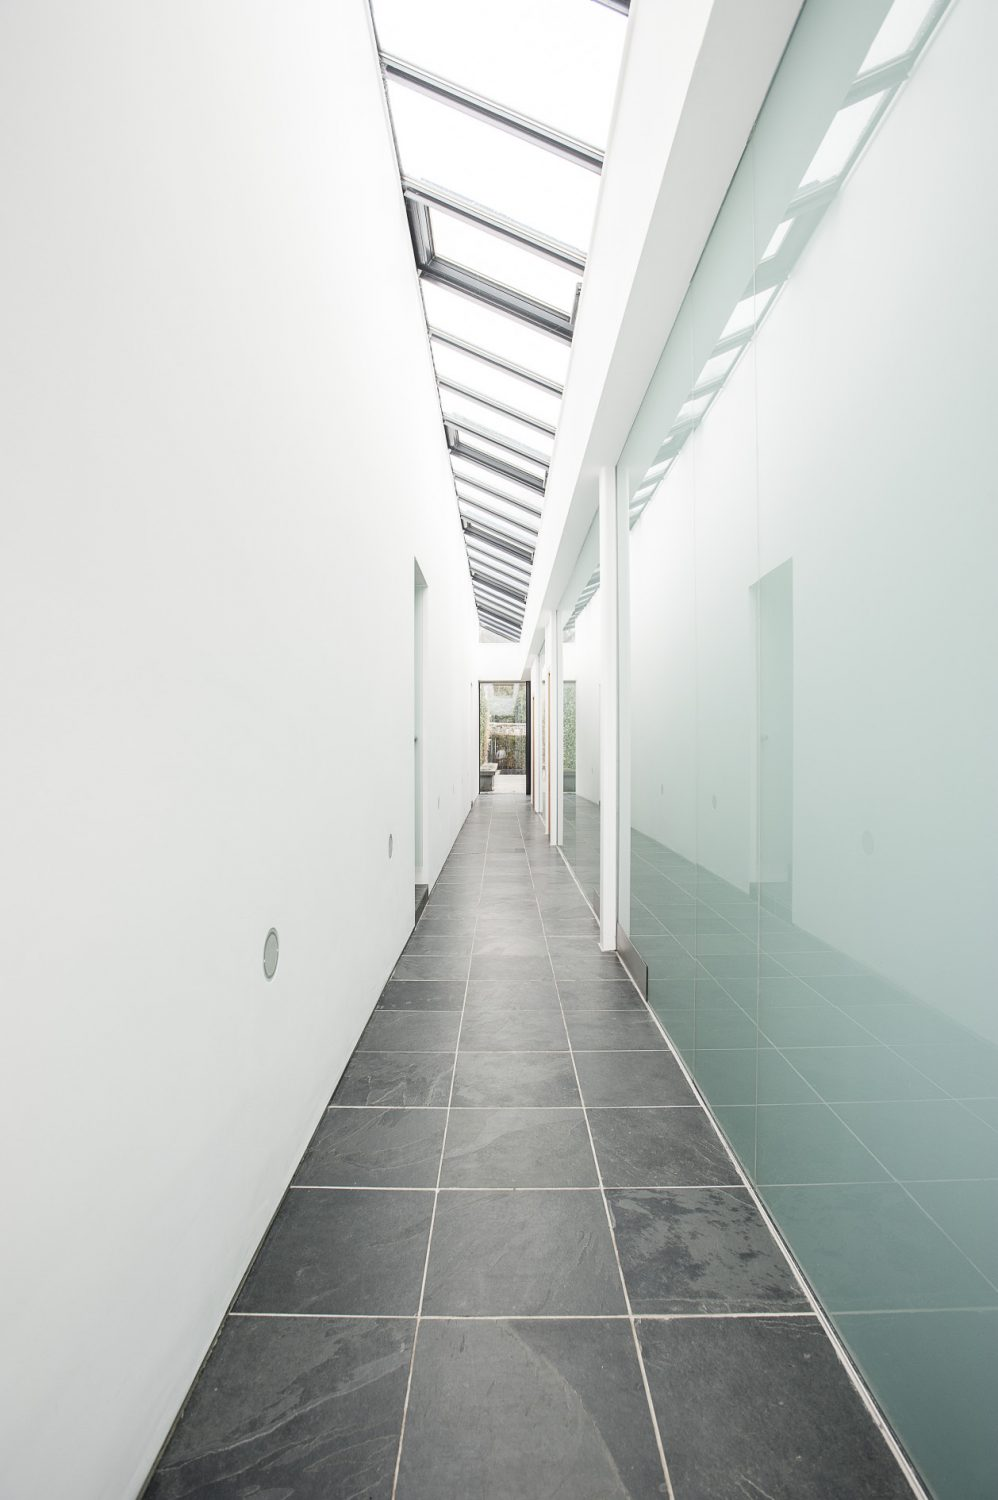 A glazed passageway acts as the spine of the building and separates the contemporary glass part of the building from the original potting sheds